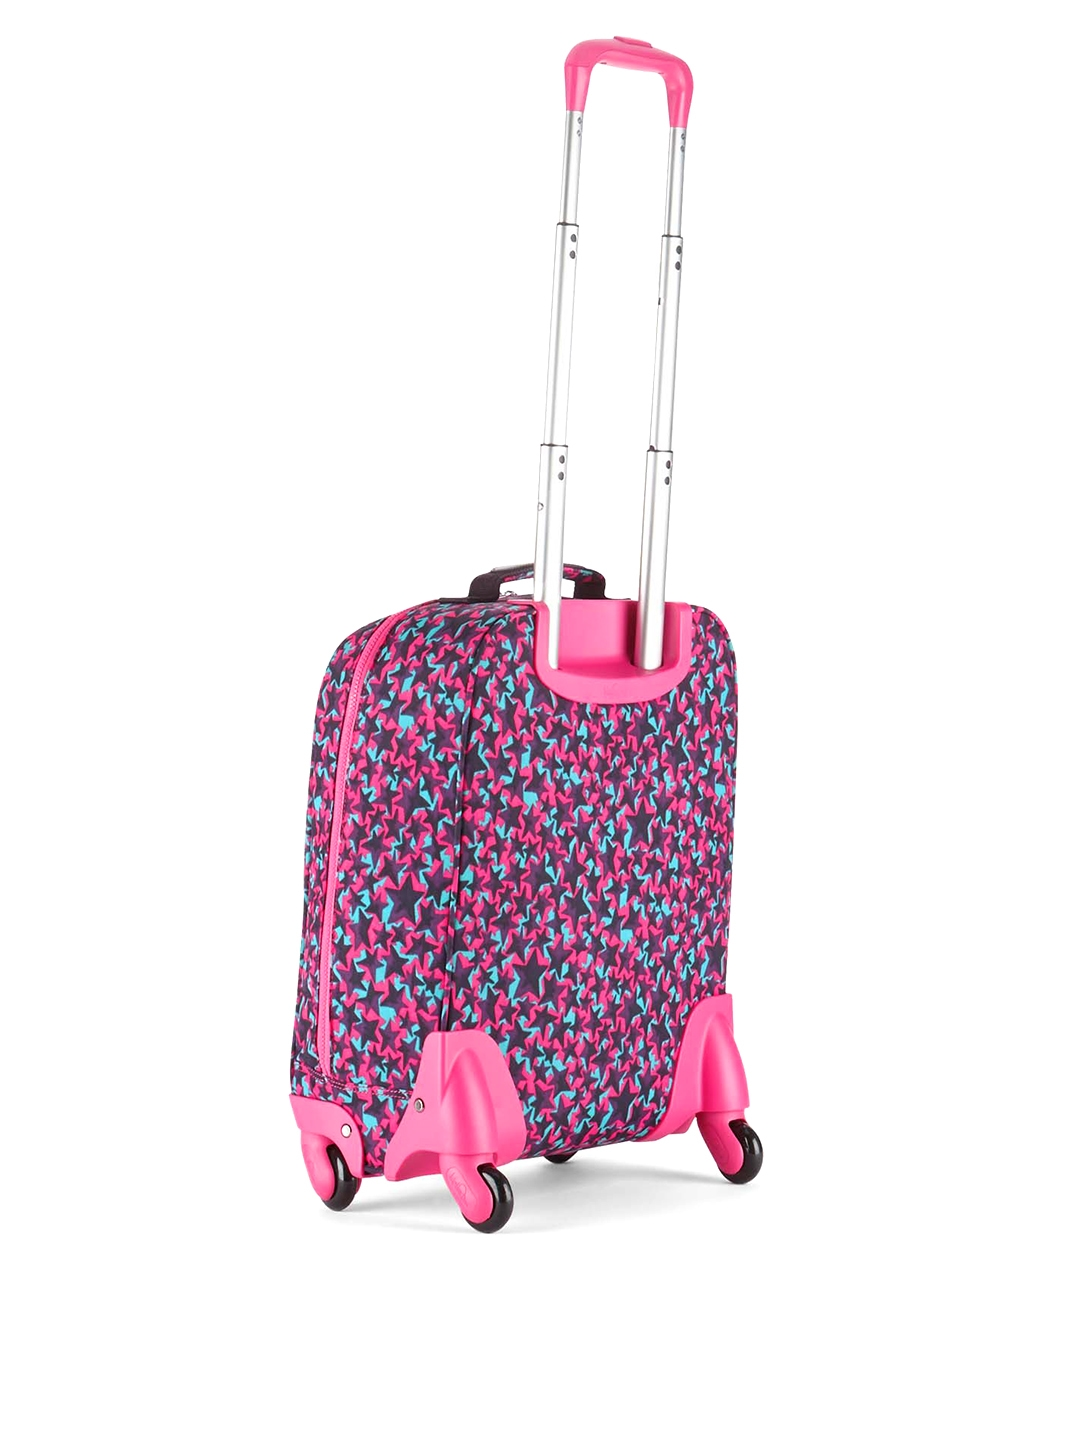 6e4b46b376 Buy Kipling Girls Purple   Pink Printed Cabin Trolley Bag - Trolley ...